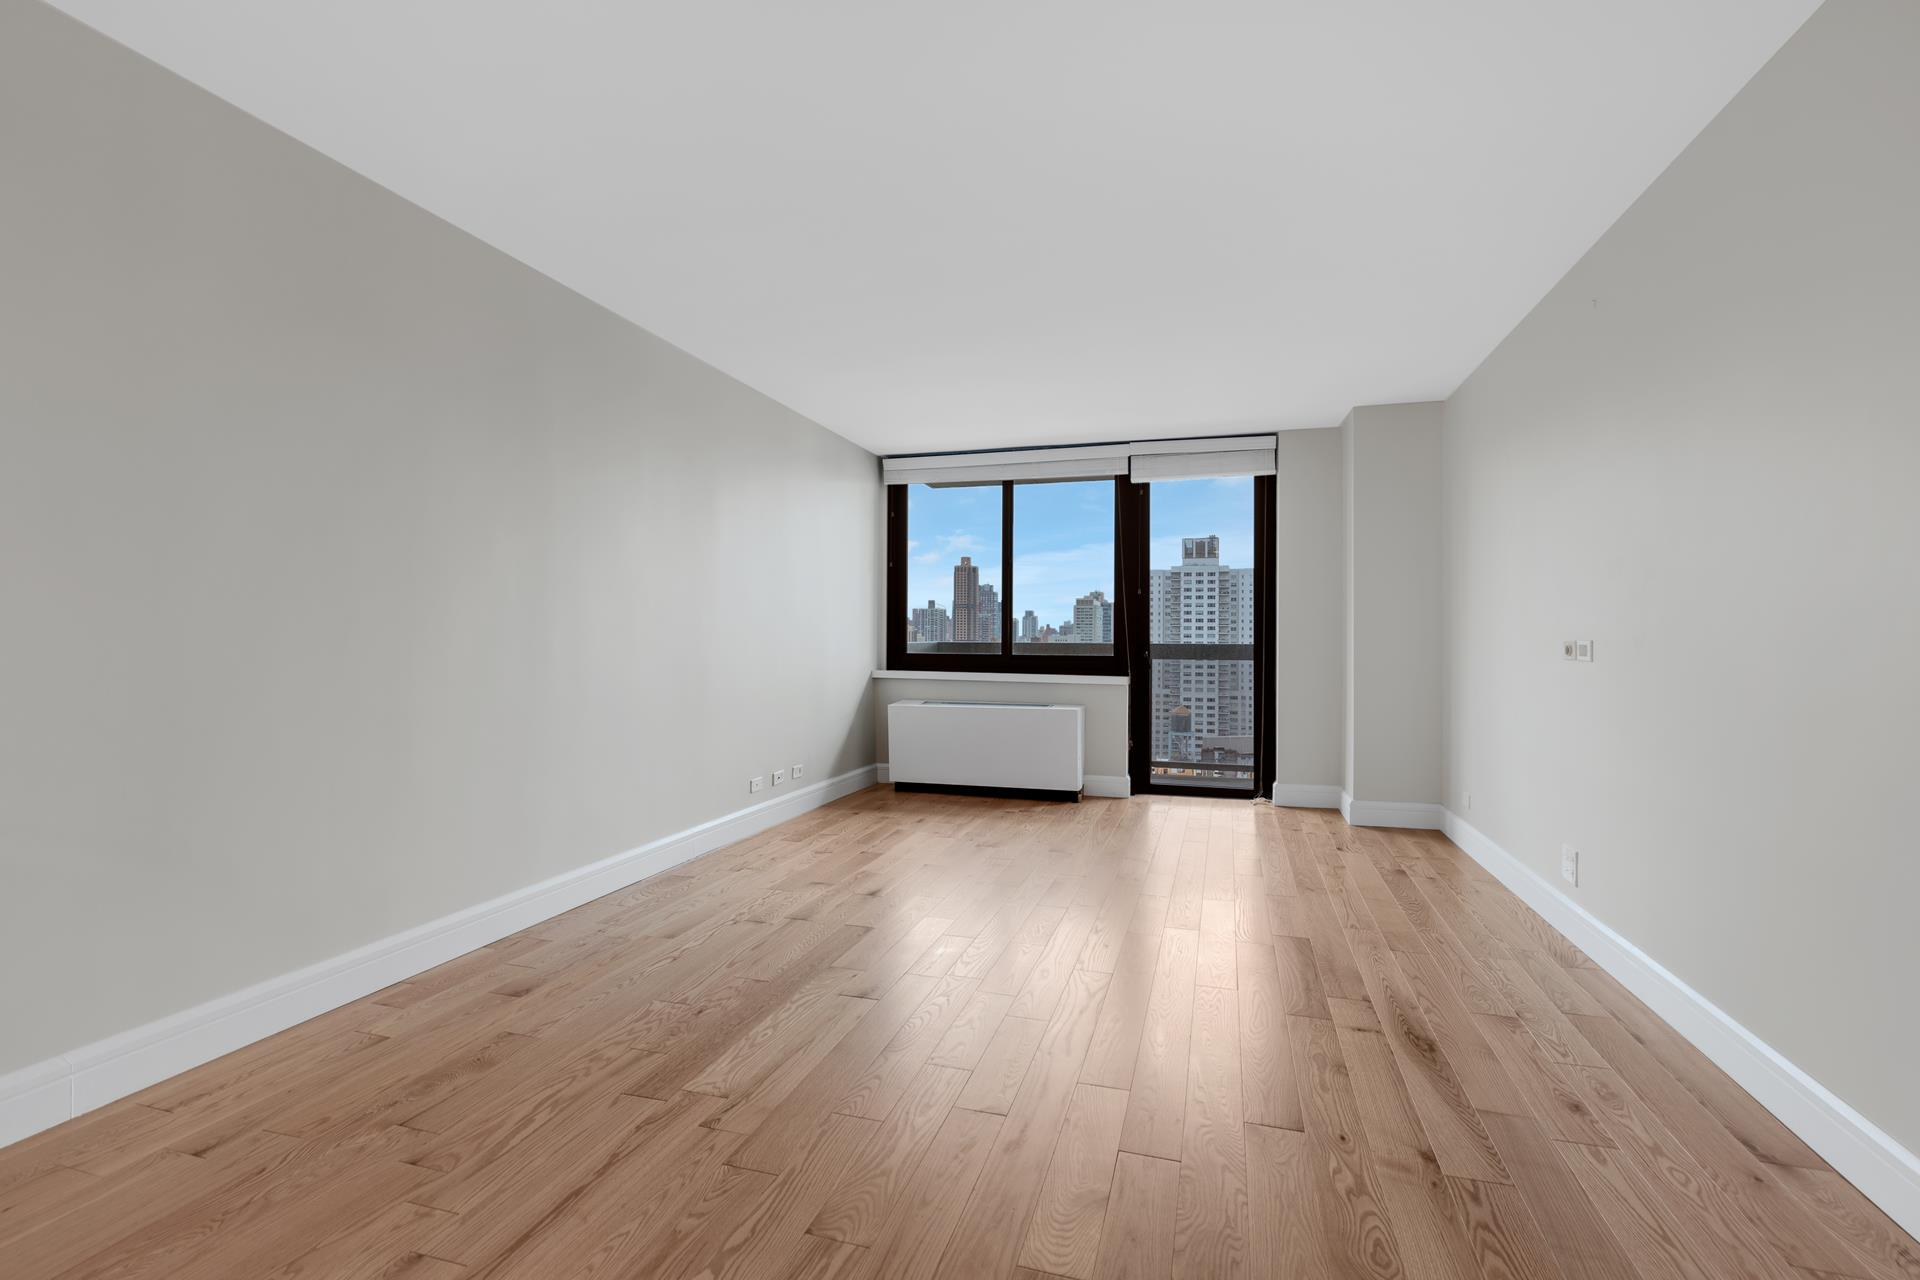 MINT CONDITION 1 bedroom with East river views. The full-service luxury building has a doorman and concierge and offers a lifestyle spa, fitness and wellness facility (including an indoor pool with lounge/game room, rock climbing wall, basketball and squash   courts with weekly and all inclusive classes and workshops, hot tubs, sauna and steam rooms, and a 20,000 square foot private park). The apartment has a balcony off the living room, which features natural walnut floors. Excellent light from a Northern exposure   offers views of the East River. The custom kitchen is accented with walnut and lacquered cabinetry, Corian countertops, Basaltina lava stone backsplash, and top-of-the-line Miele, Thermador and Leibherr appliances including a dishwasher. Great closet space   throughout, as well as an ensuite Bosch washer and dryer. The bathroom walls are made of custom-designed crema dorcia bamboo-textured and honed Piombo tiles with a Zuma soaking tub and Watermark fixtures. The Second Avenue subway and express buses zip you   to every part of the city. Building Features: Doorman, Concierge, Security system, Courtyard, Garden, Roof deck, Pool, Health club. An assessment of $293.26 is in effect through October-2021.